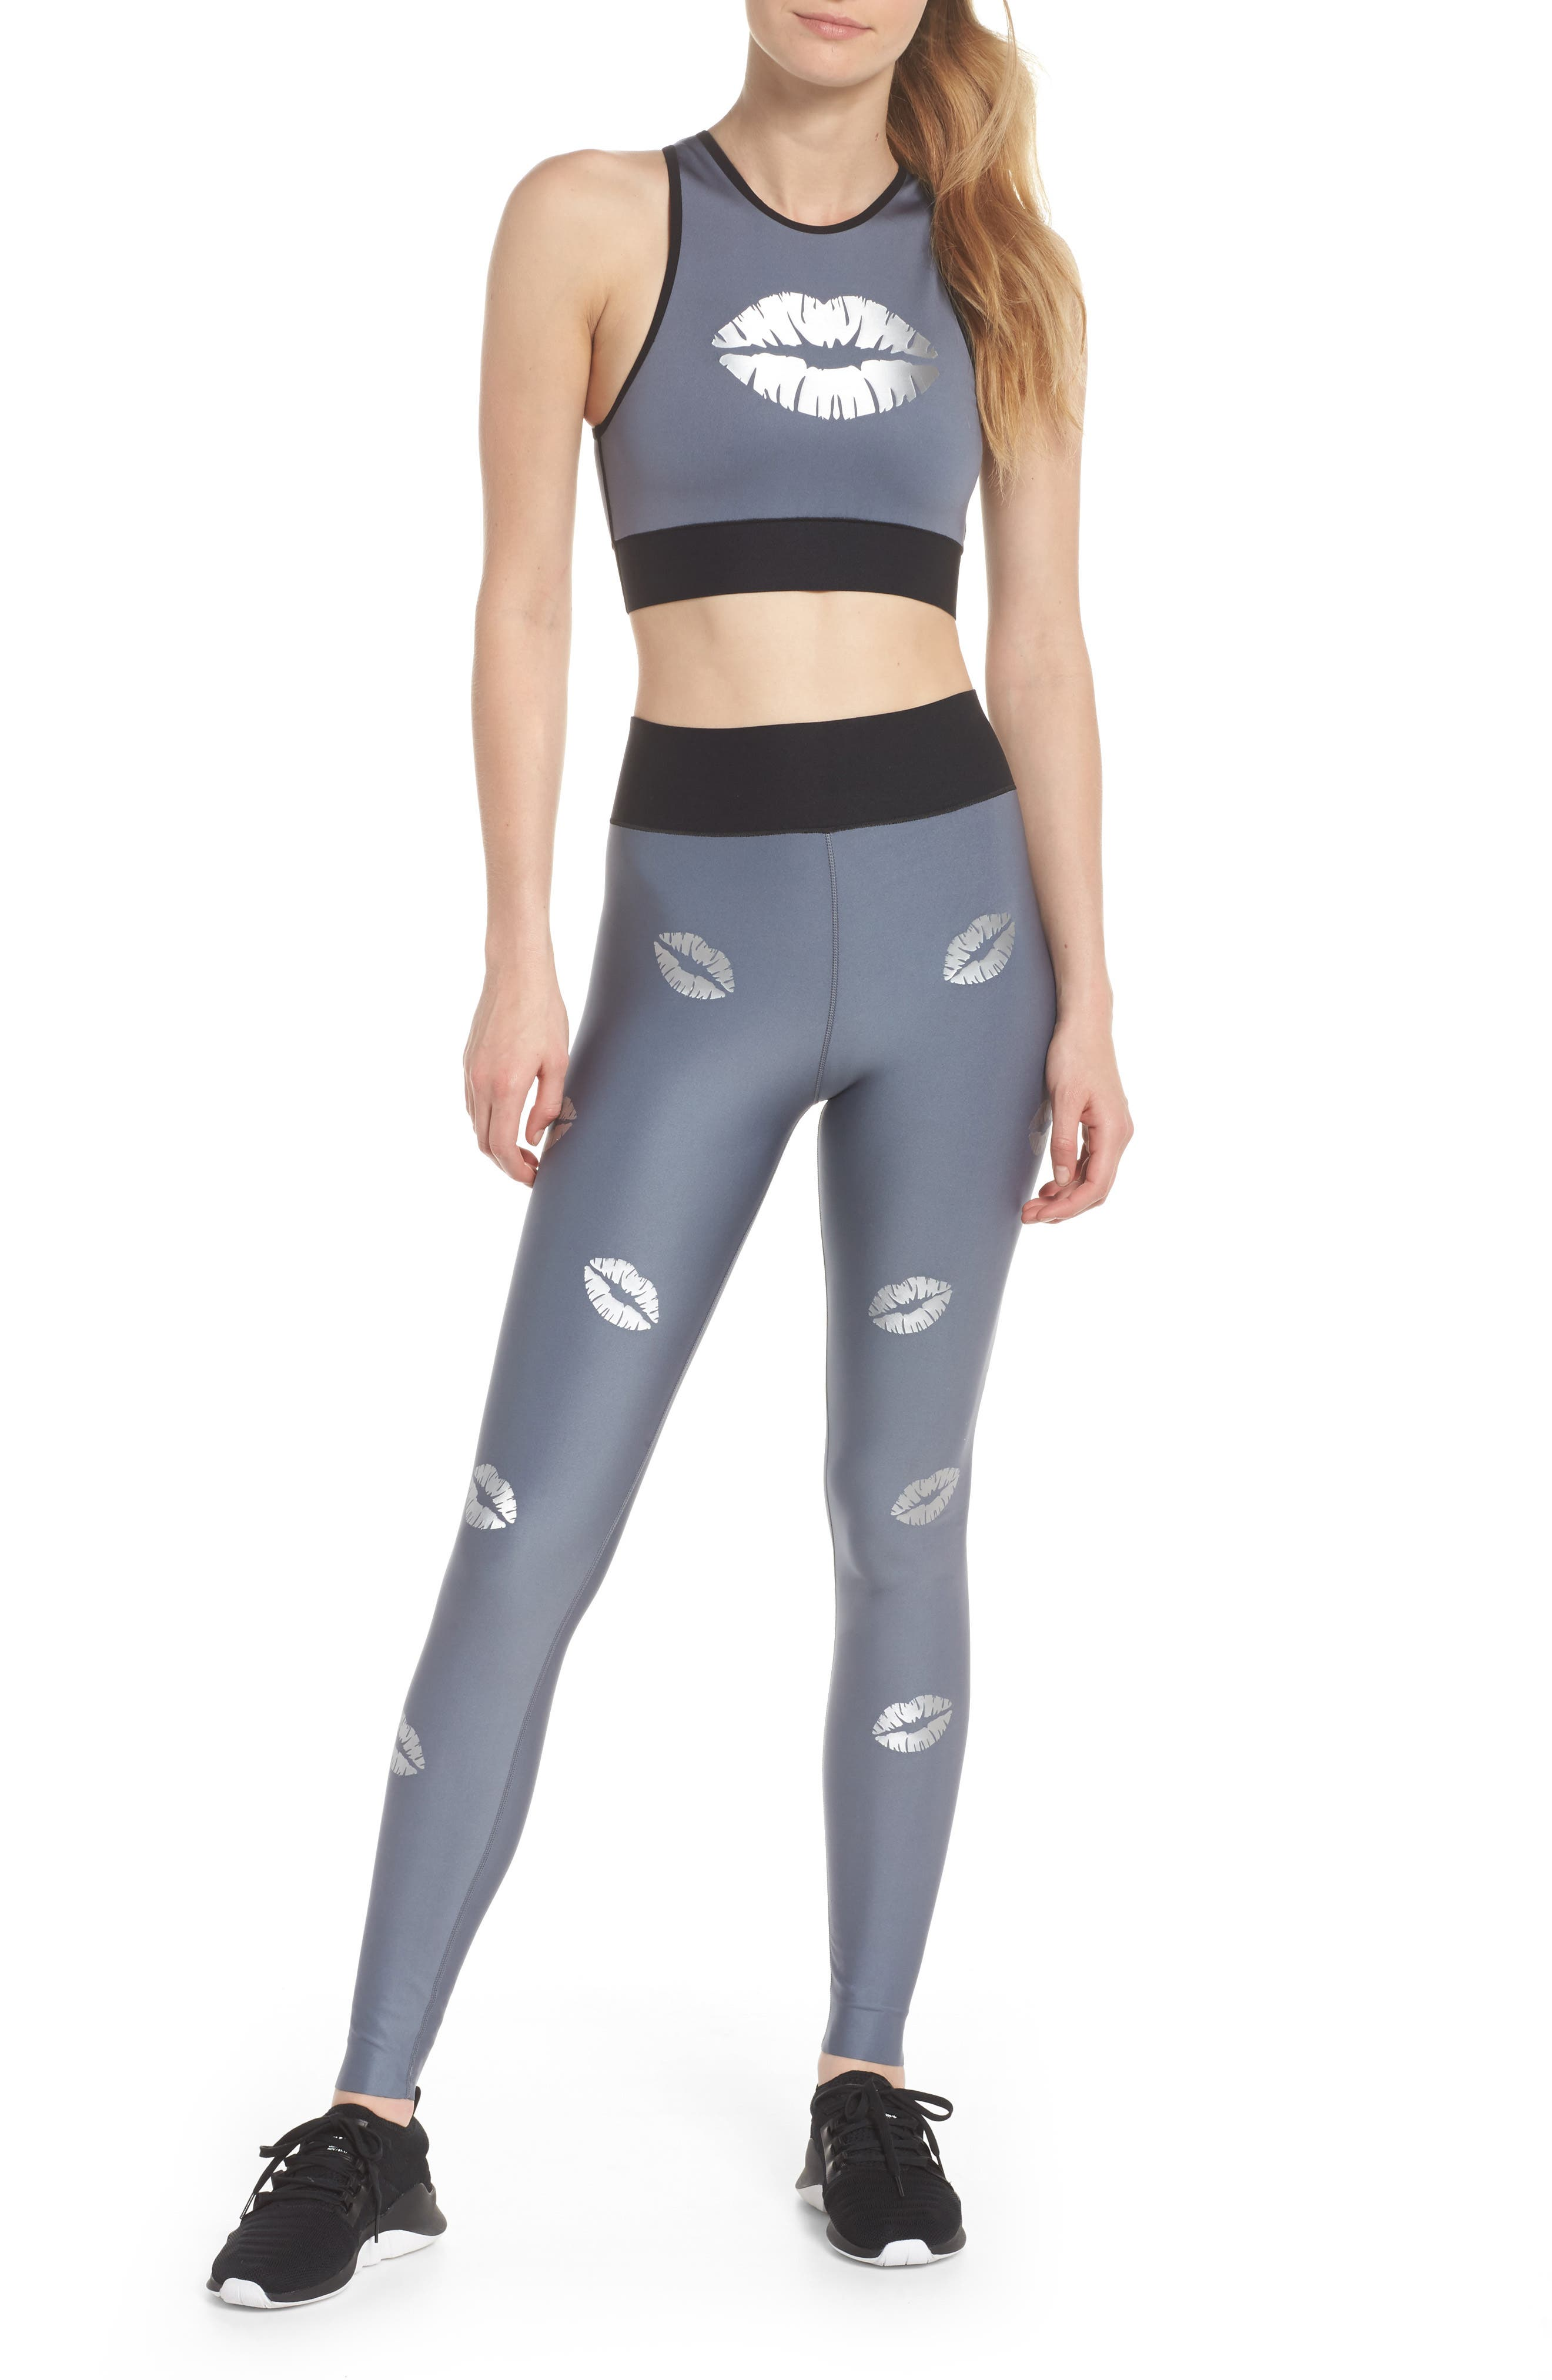 Altitude Lux Make Out Crop Top,                             Alternate thumbnail 6, color,                             Silver Brushed Steel